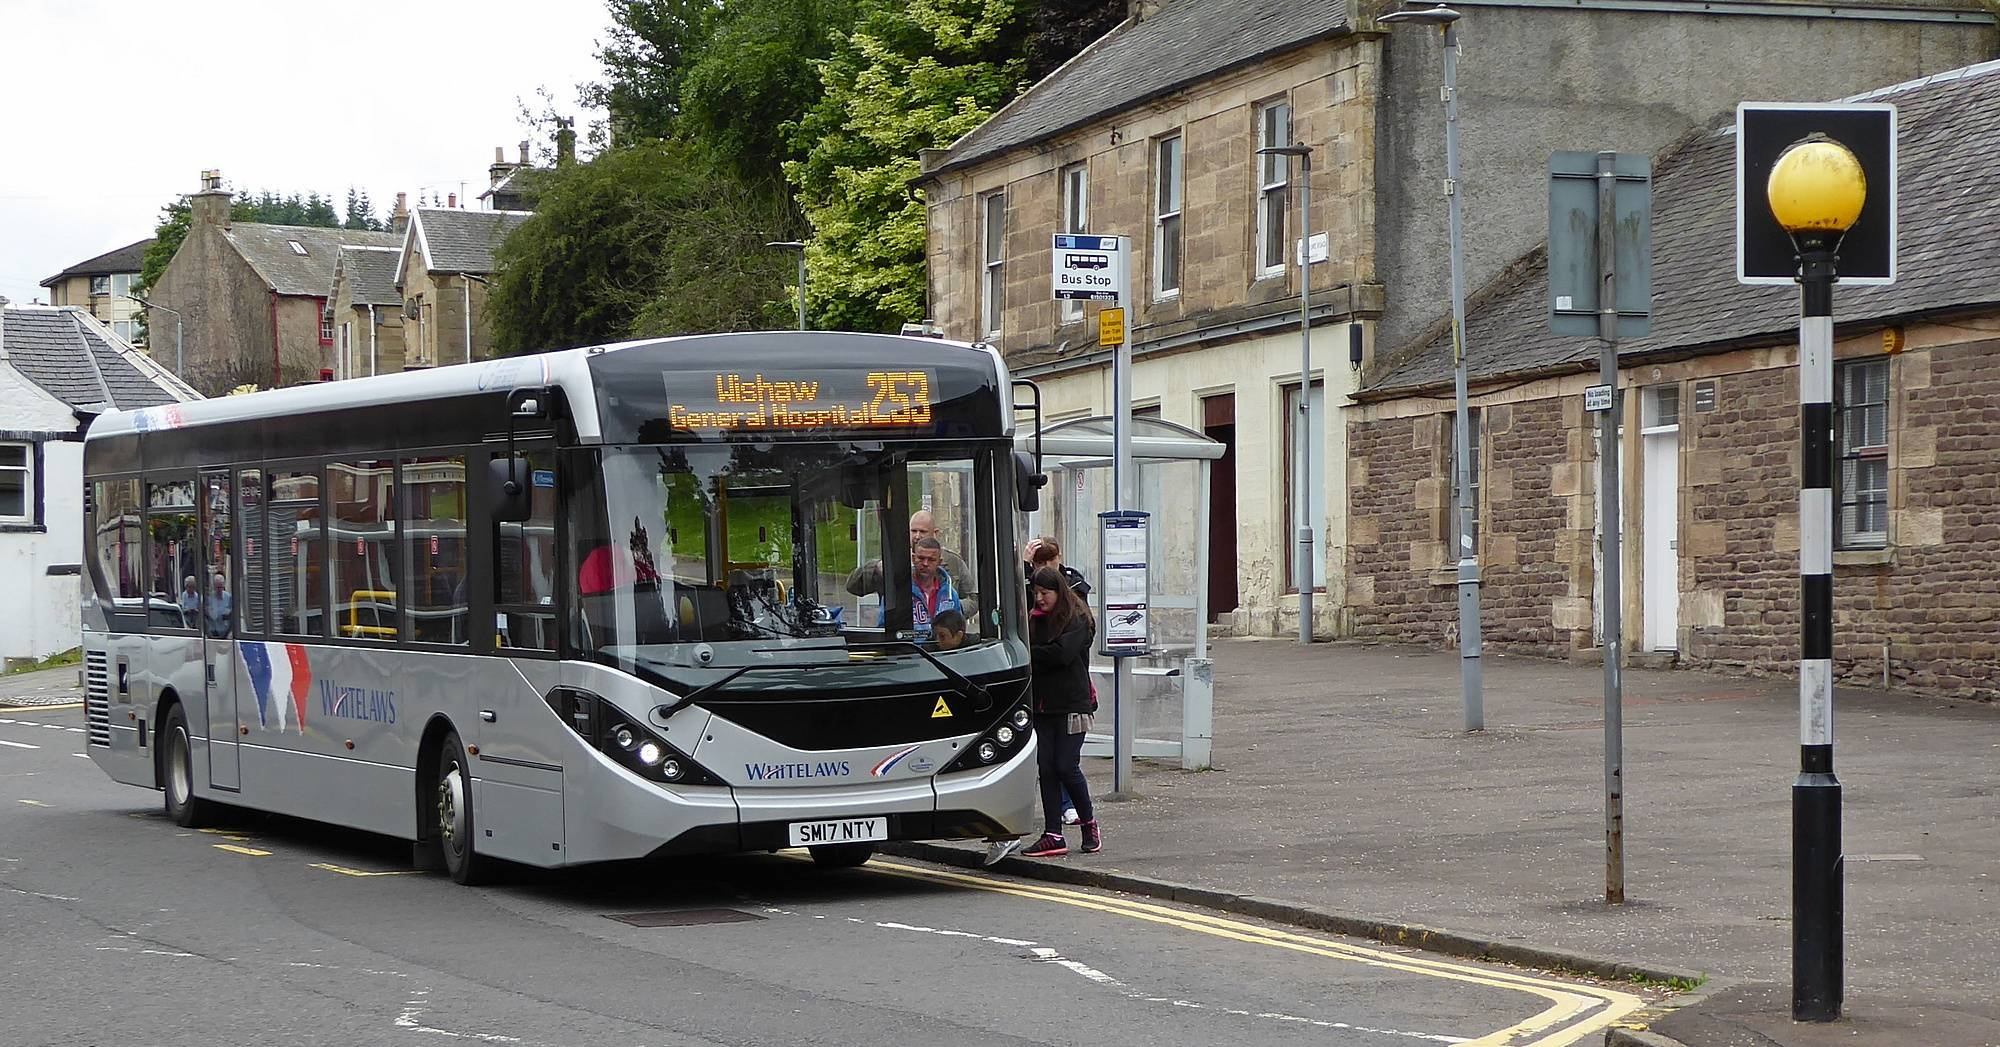 253 Coalburn bus at the Fountain